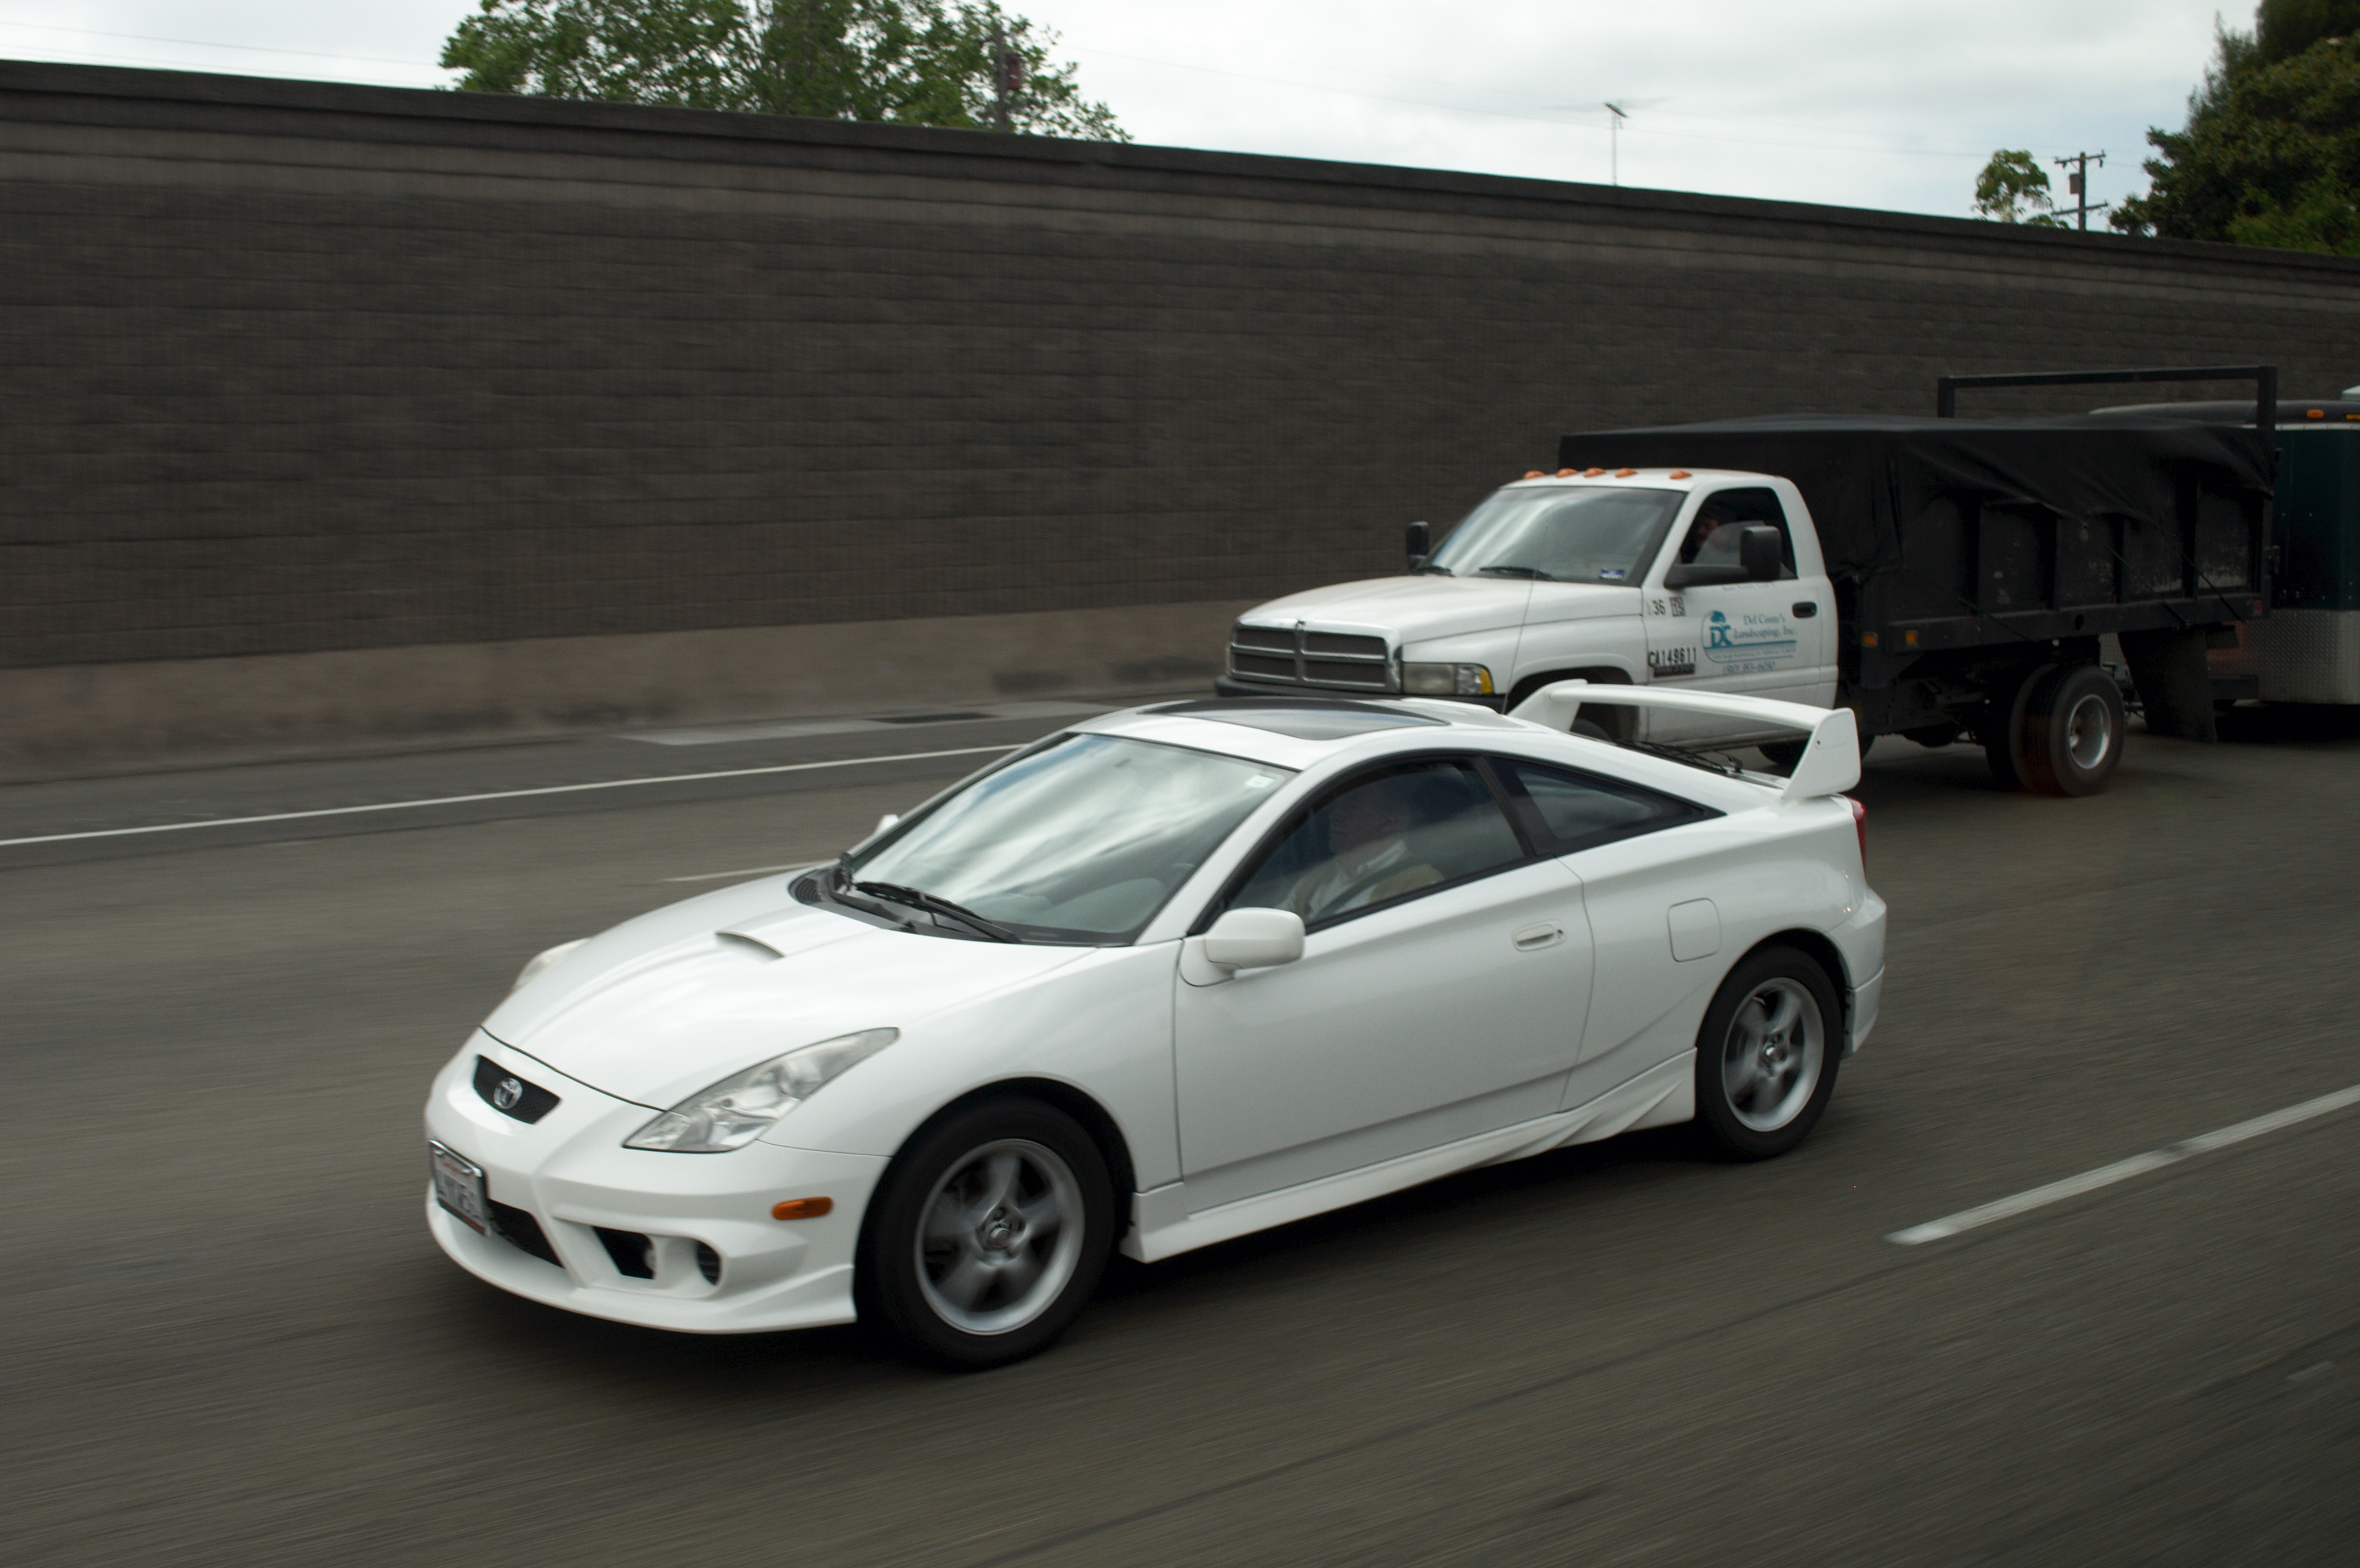 White sports car and truck on highway, Auto racing, Car, OSQ, OSQ Retreat, HQ Photo